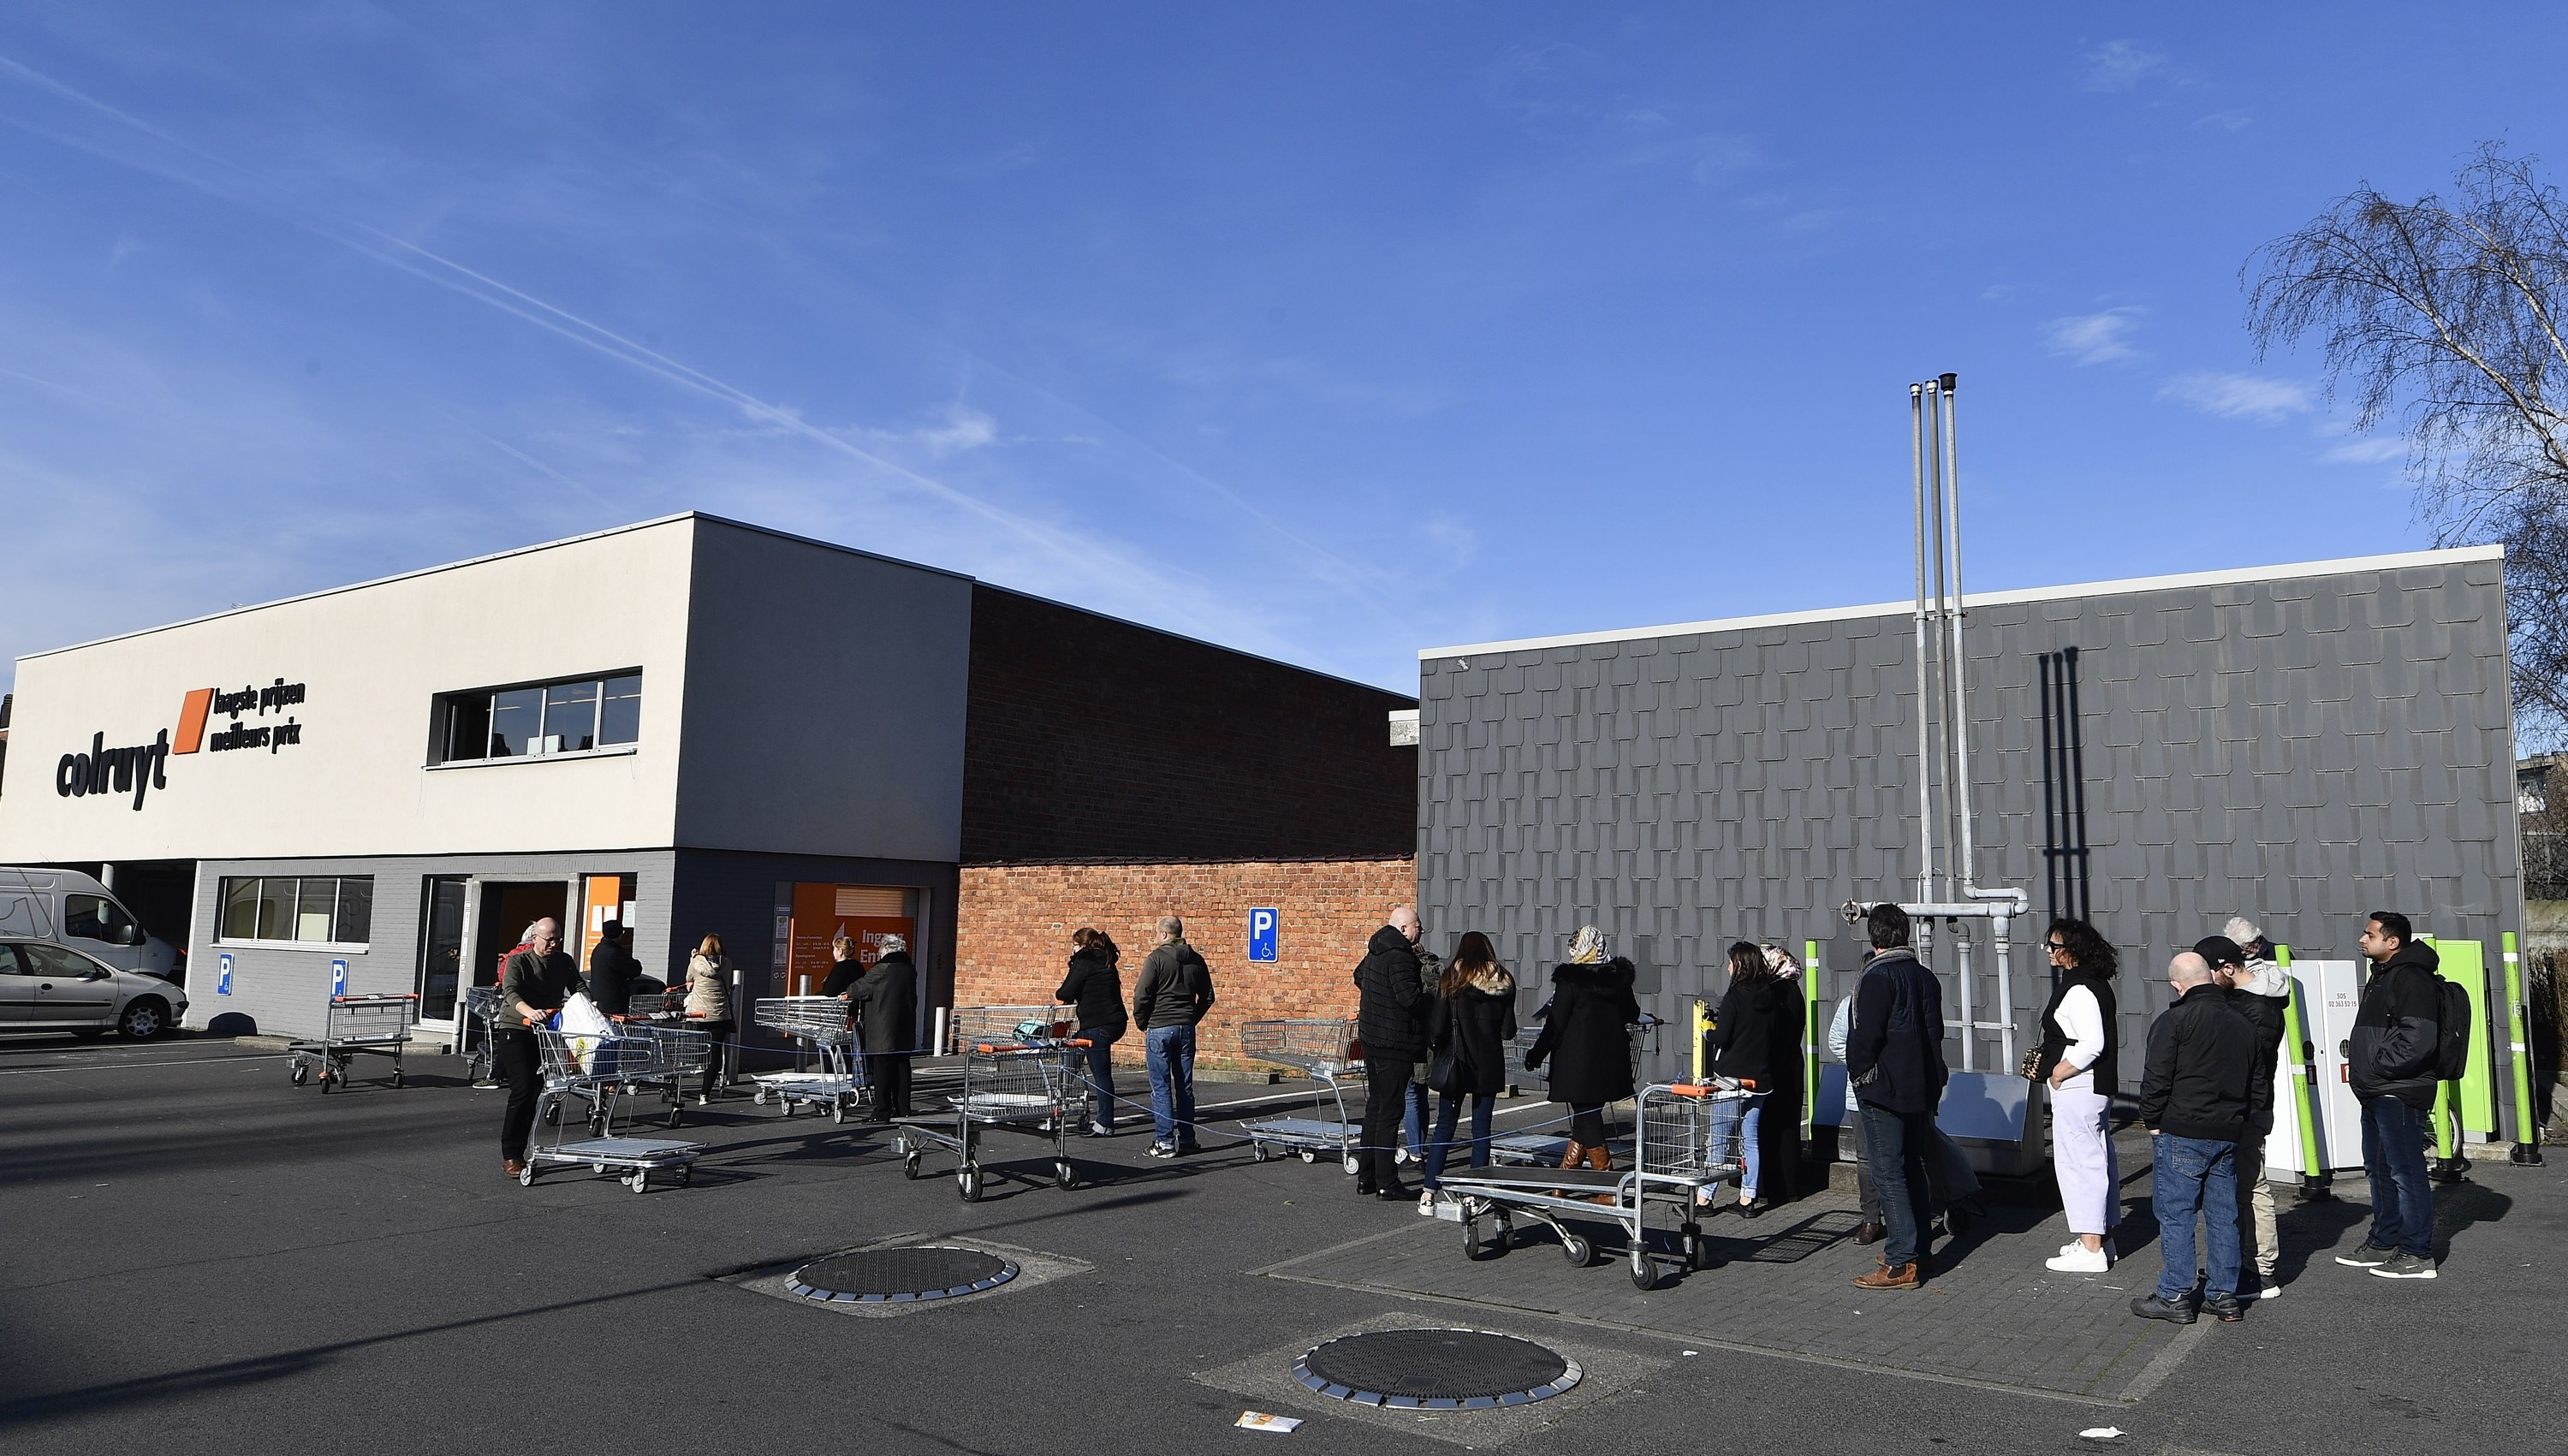 The line in the parking lot of a Colruyt supermarket